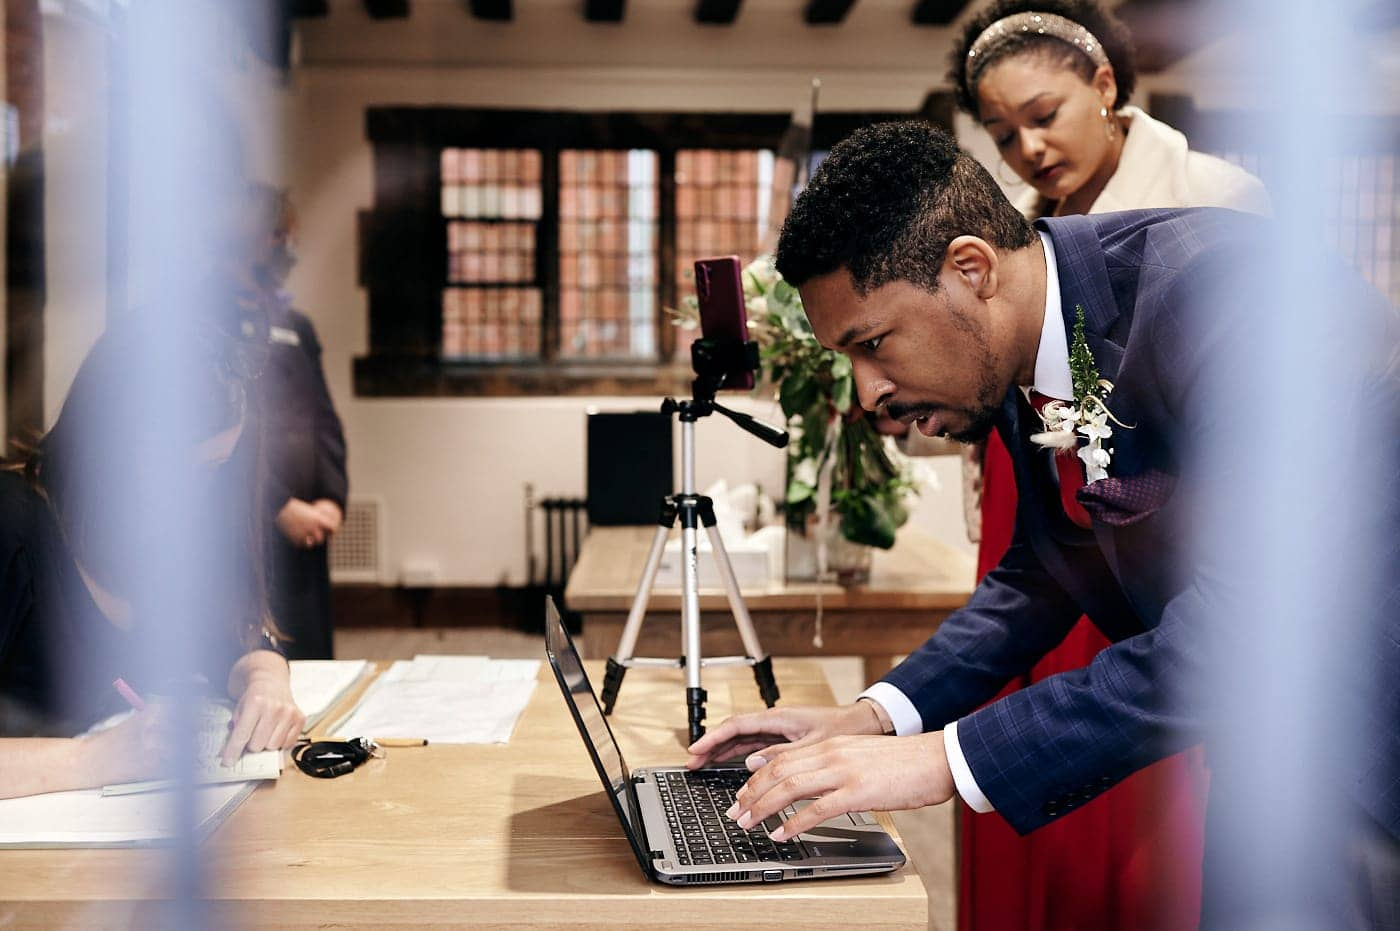 Groom sets up laptop for livestreaming of wedding ceremony in The Henley Room